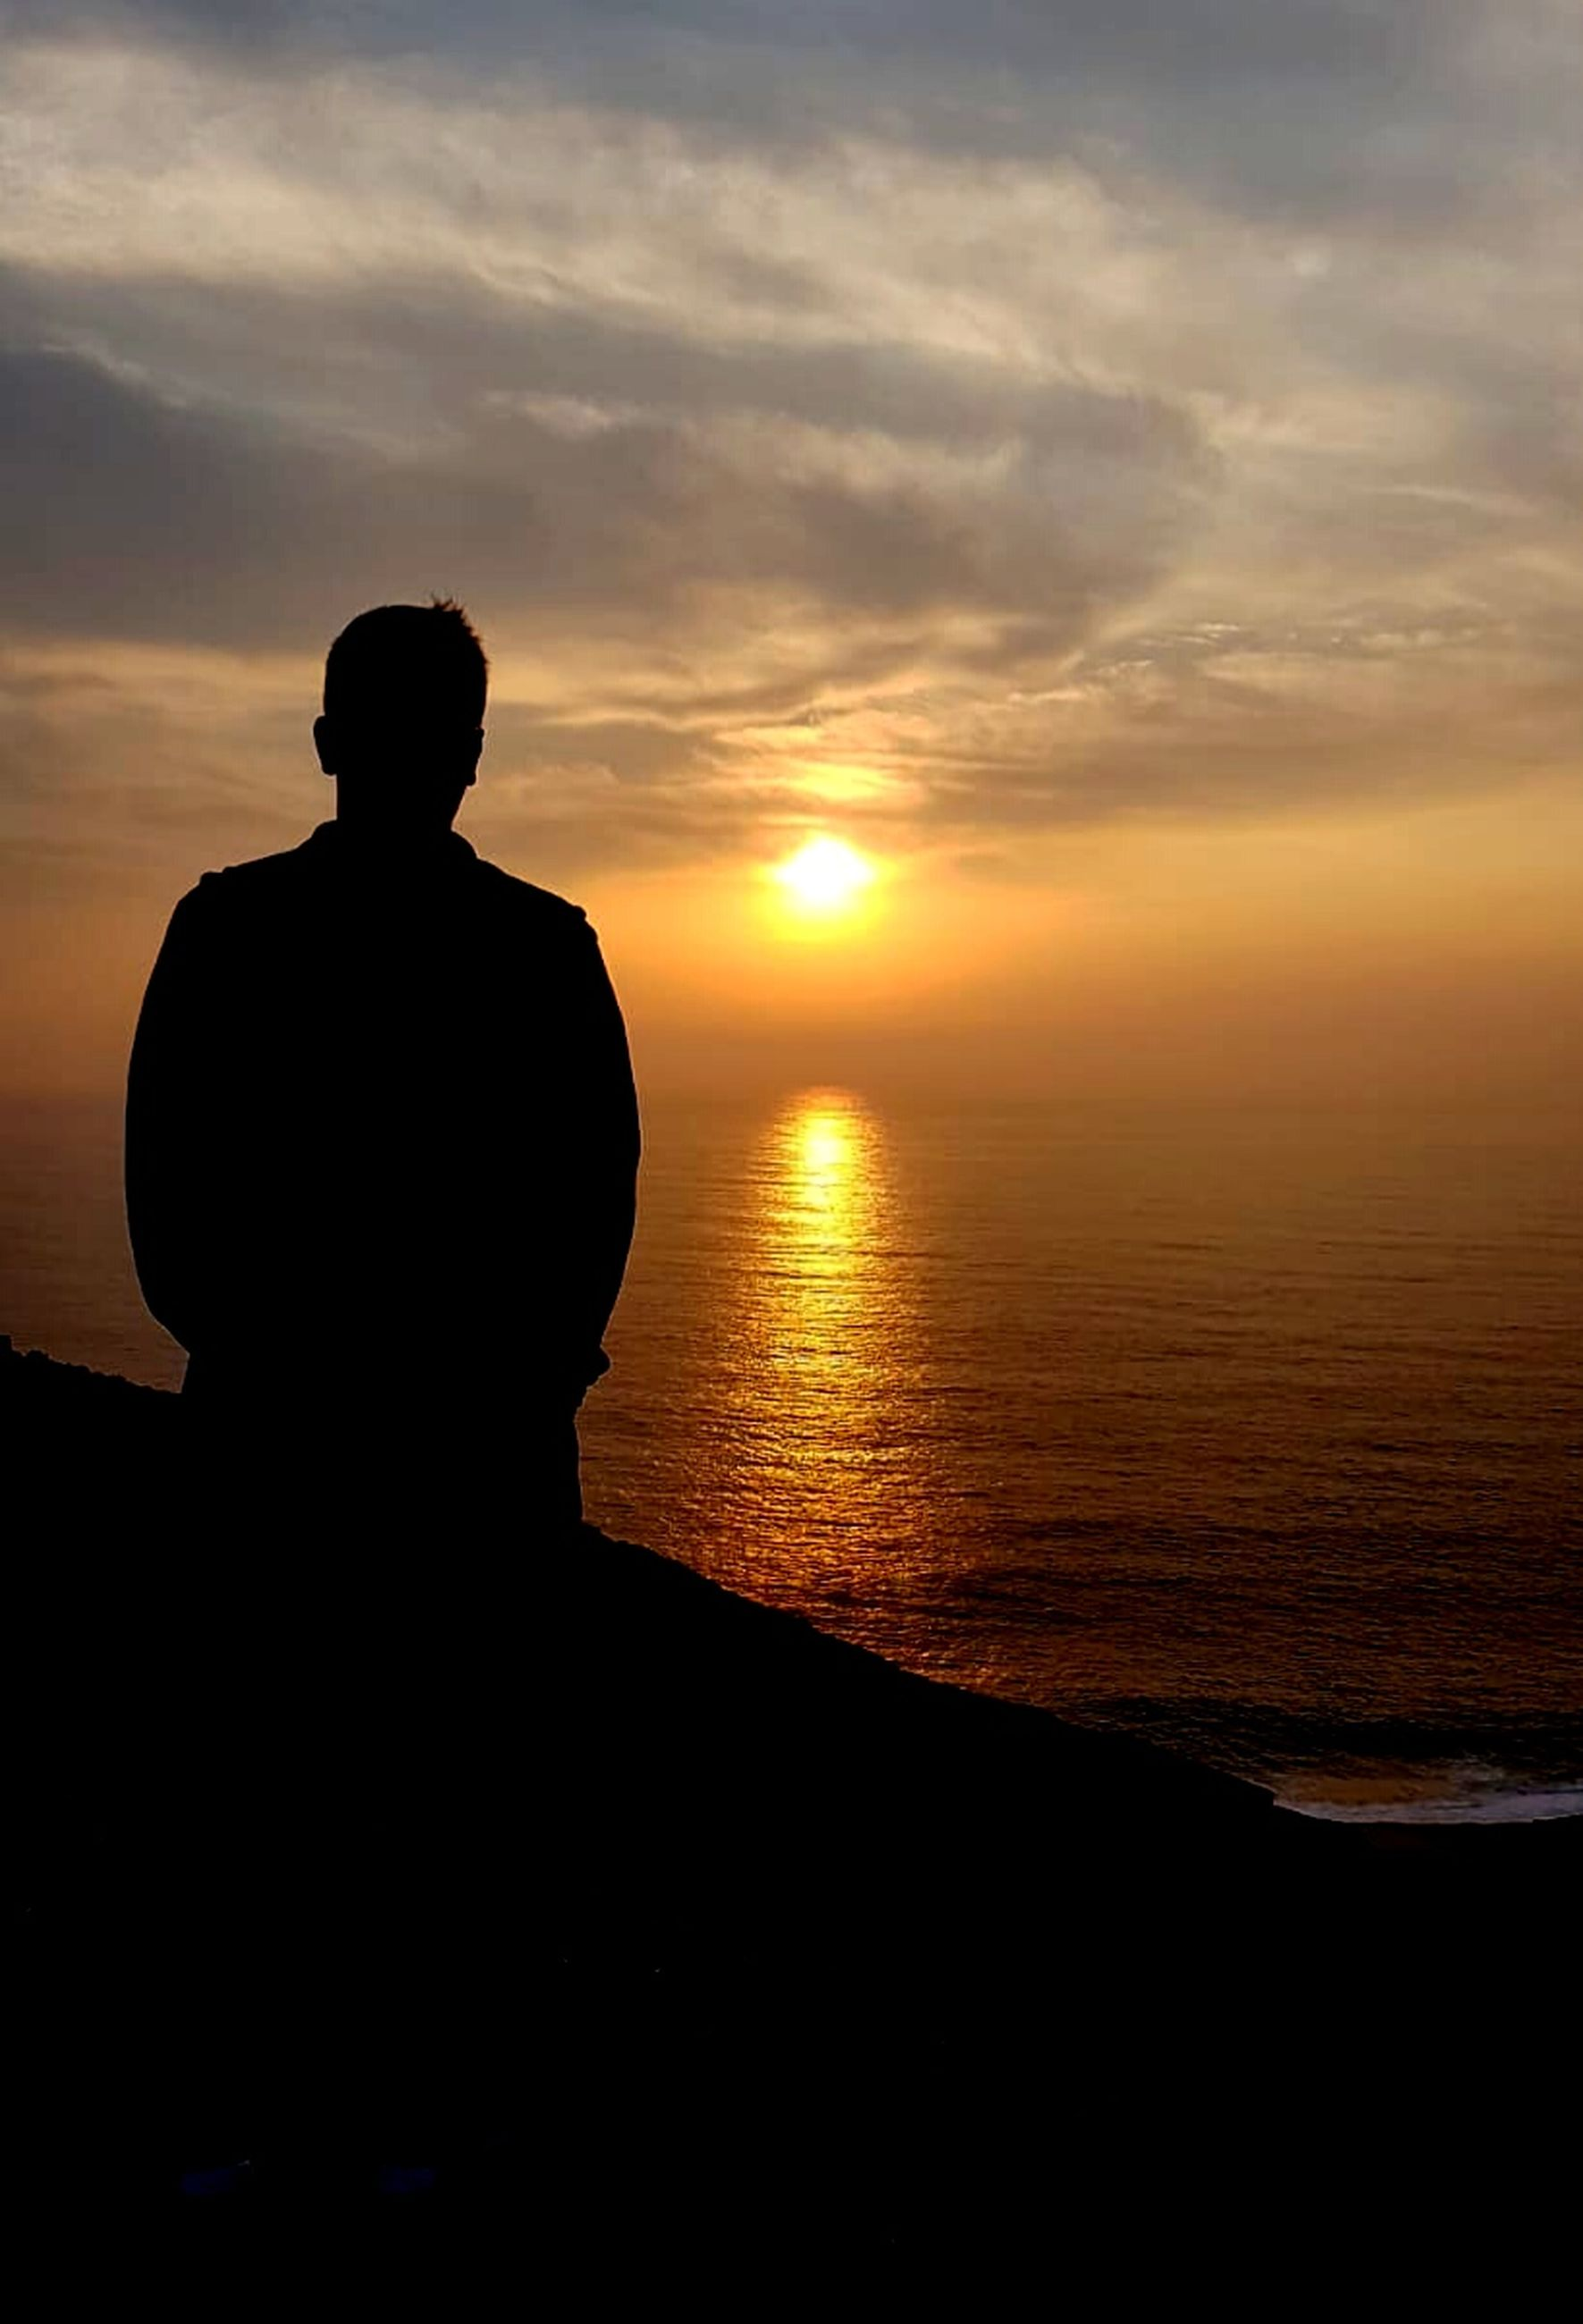 sunset, silhouette, sky, water, one person, leisure activity, real people, scenics - nature, tranquility, beauty in nature, sea, tranquil scene, orange color, lifestyles, men, nature, cloud - sky, sitting, beach, horizon over water